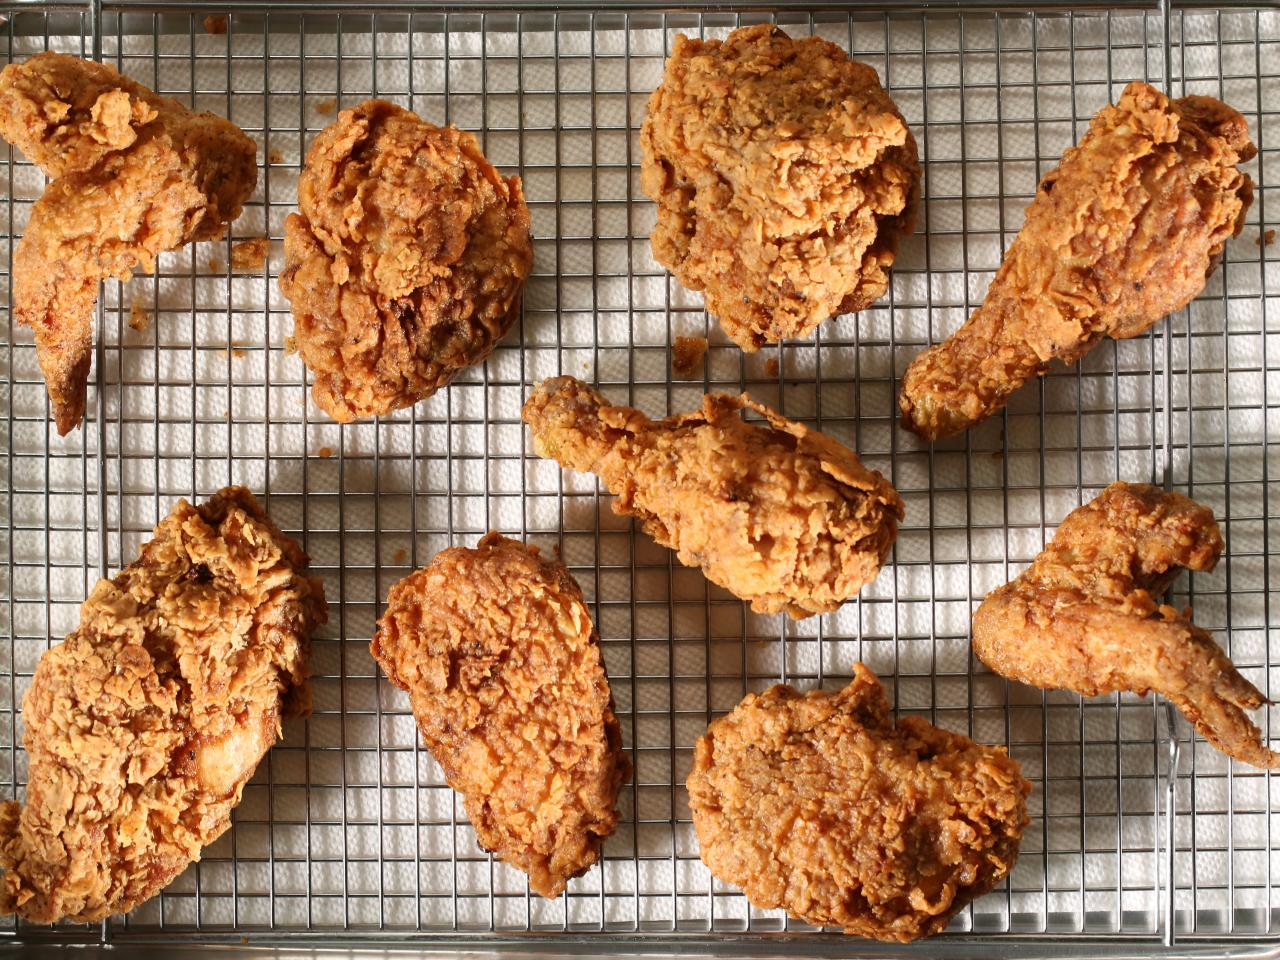 Fried Chicken from Good Eats Reloaded